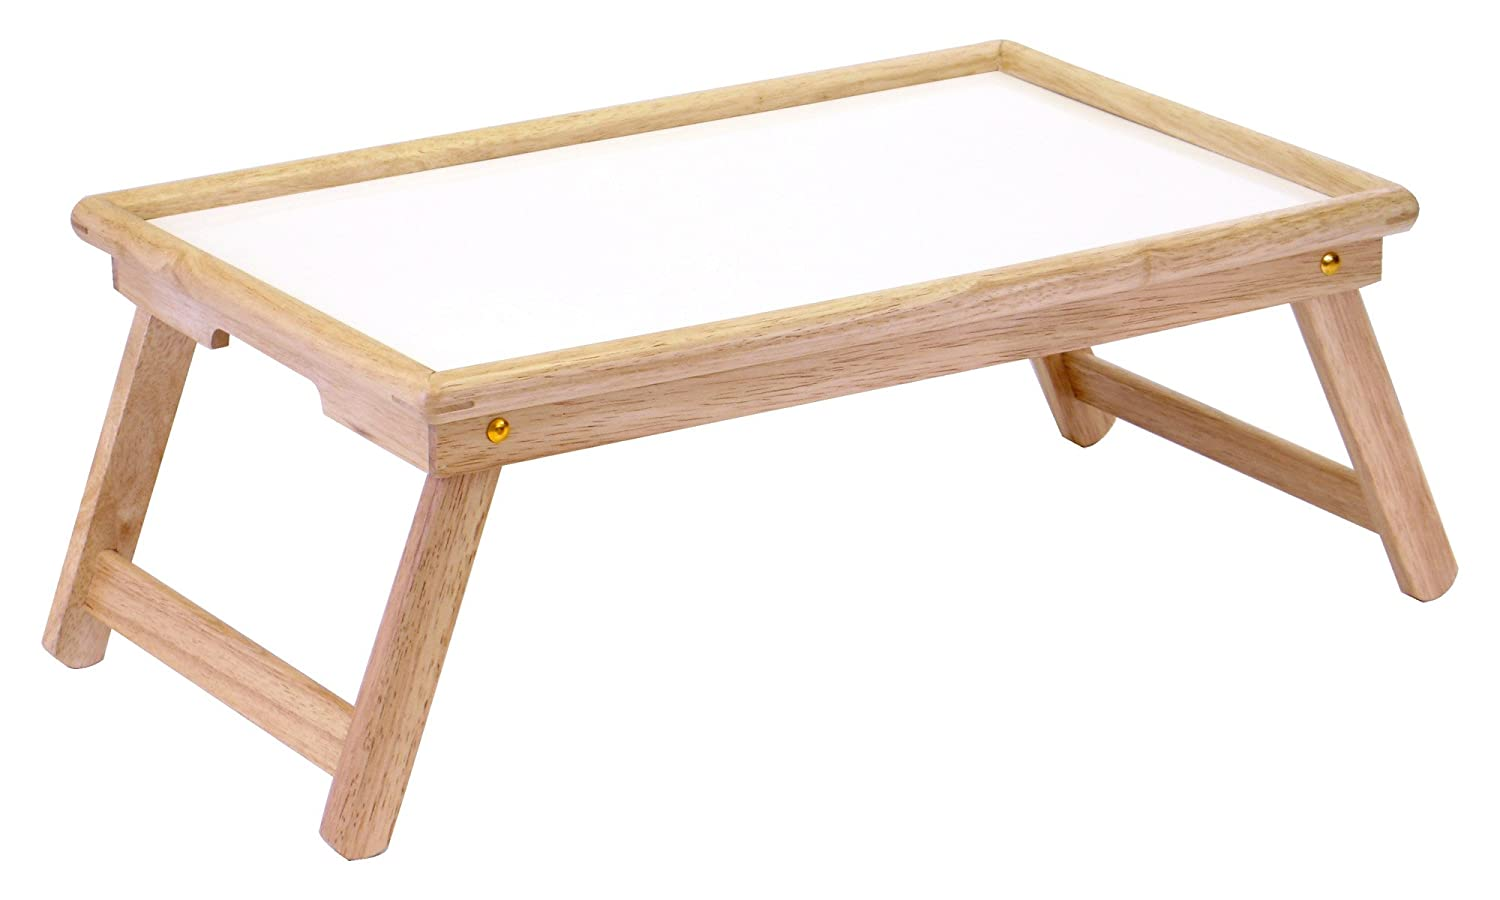 Laptop bed table tray - Laptop Bed Table Tray 16